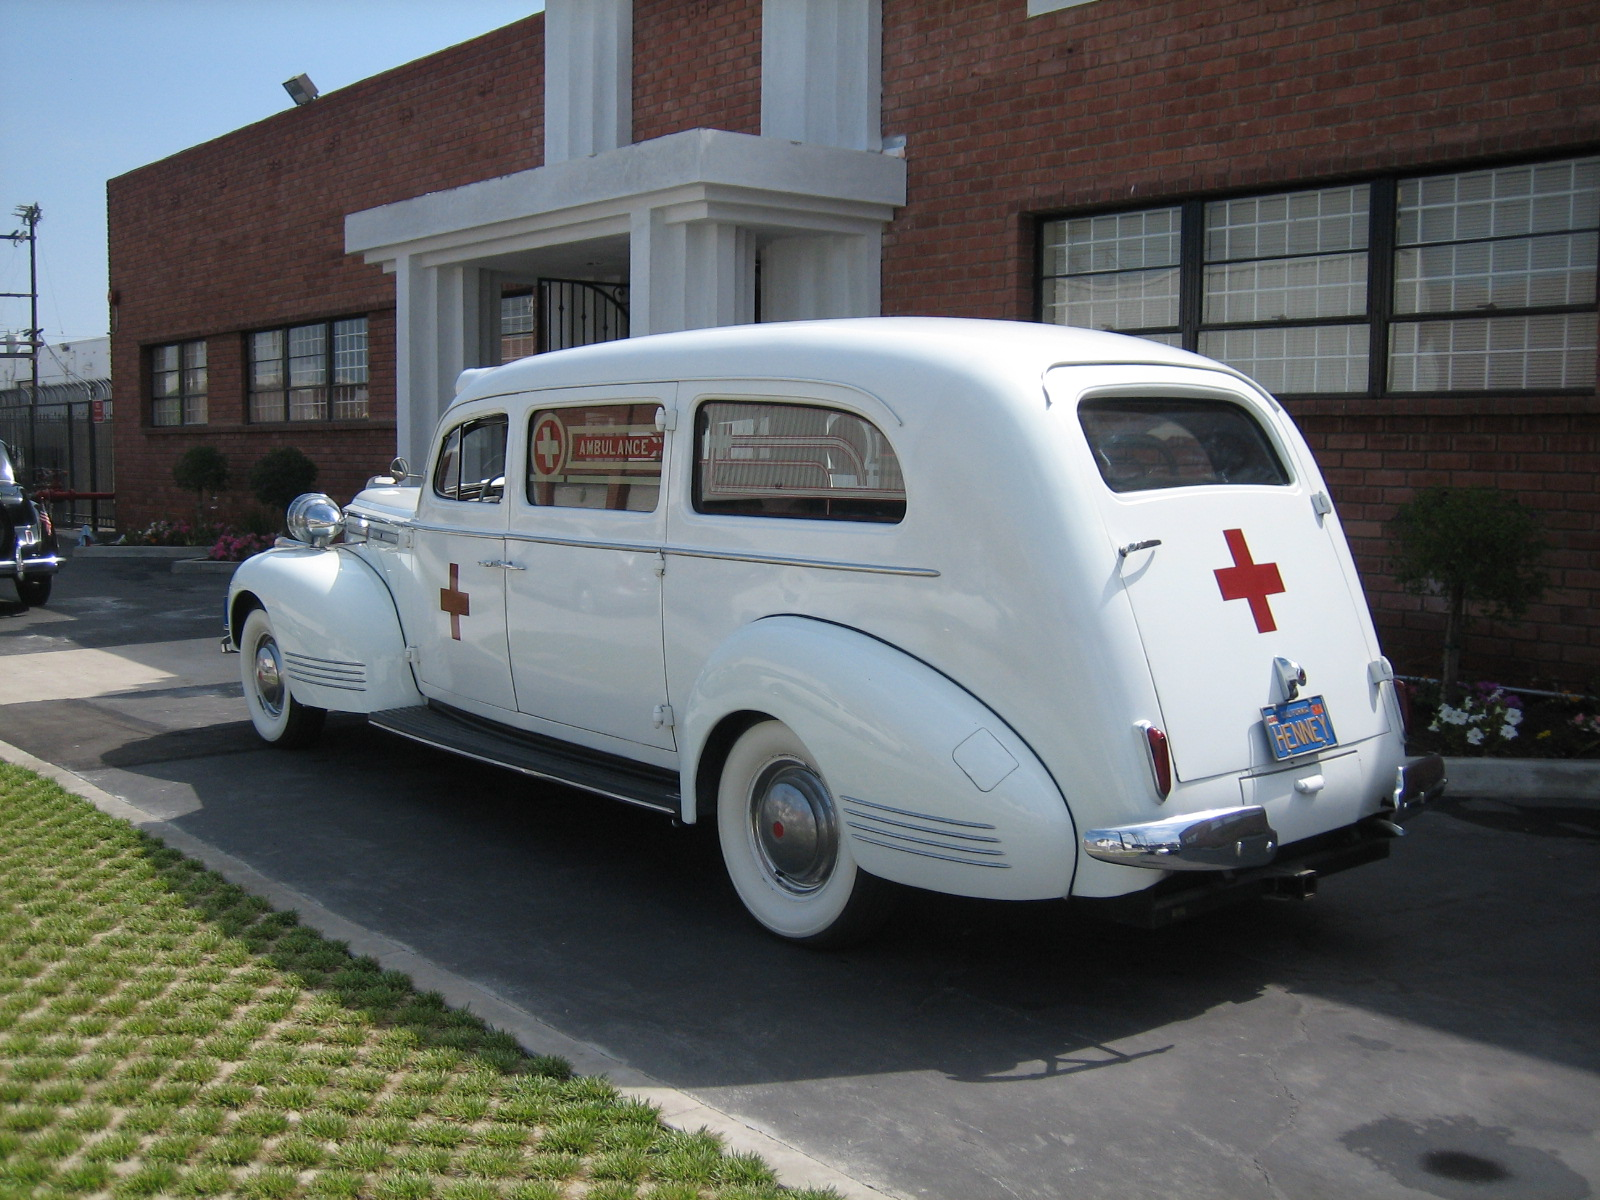 1942 Packard Ambulance for rent